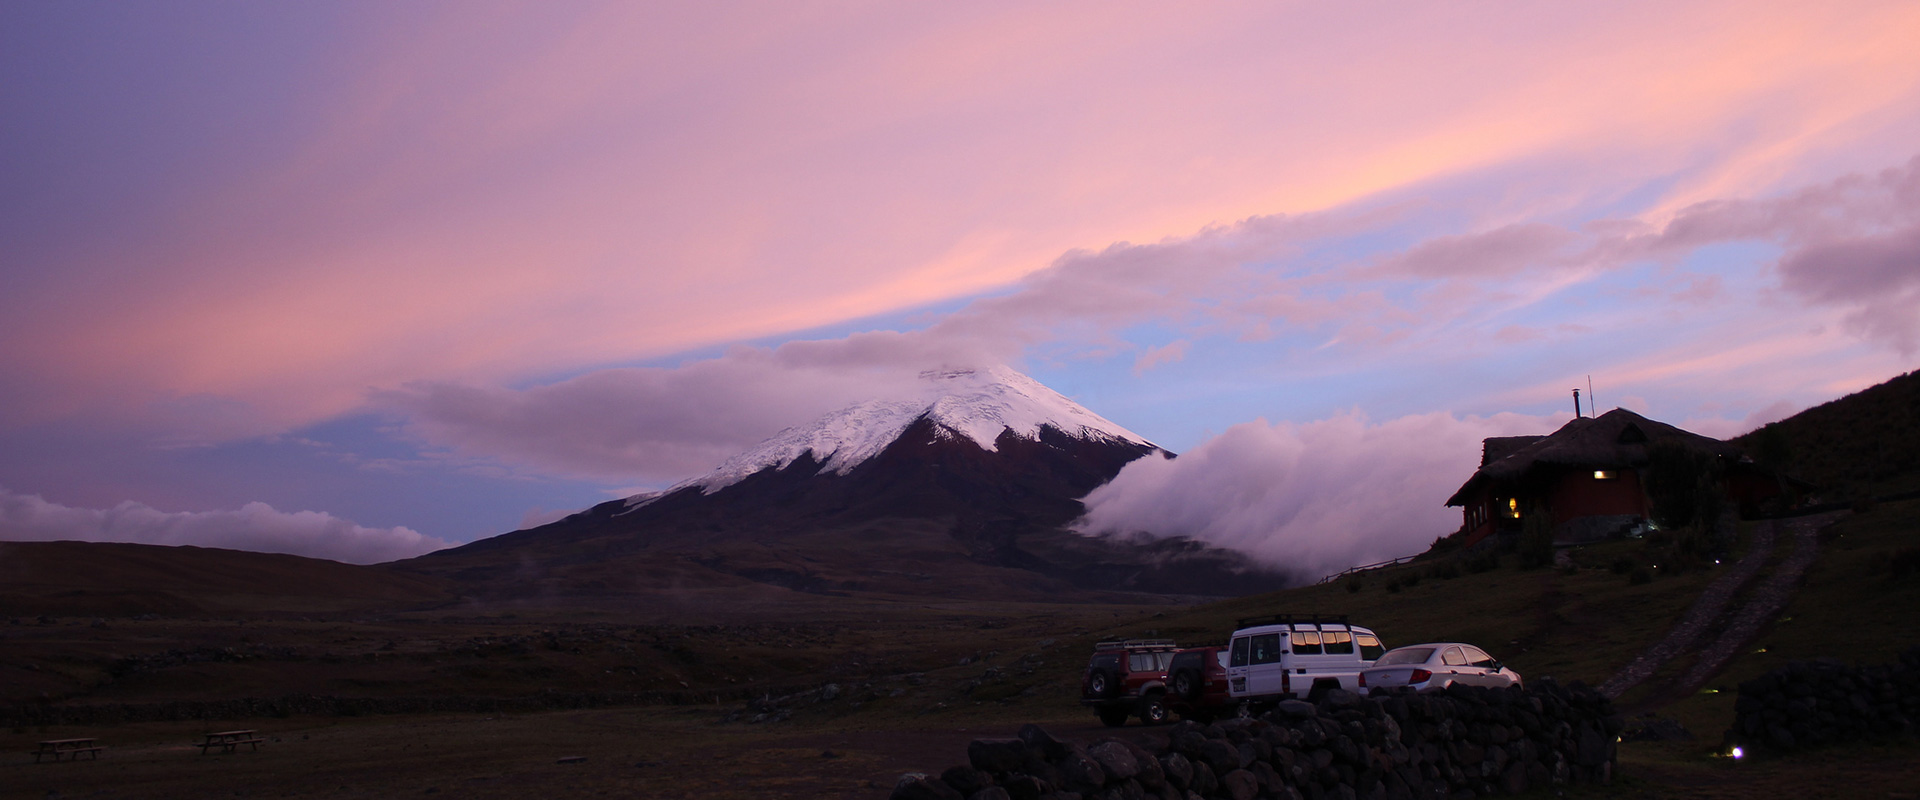 Cotopaxi Amazing Sunset